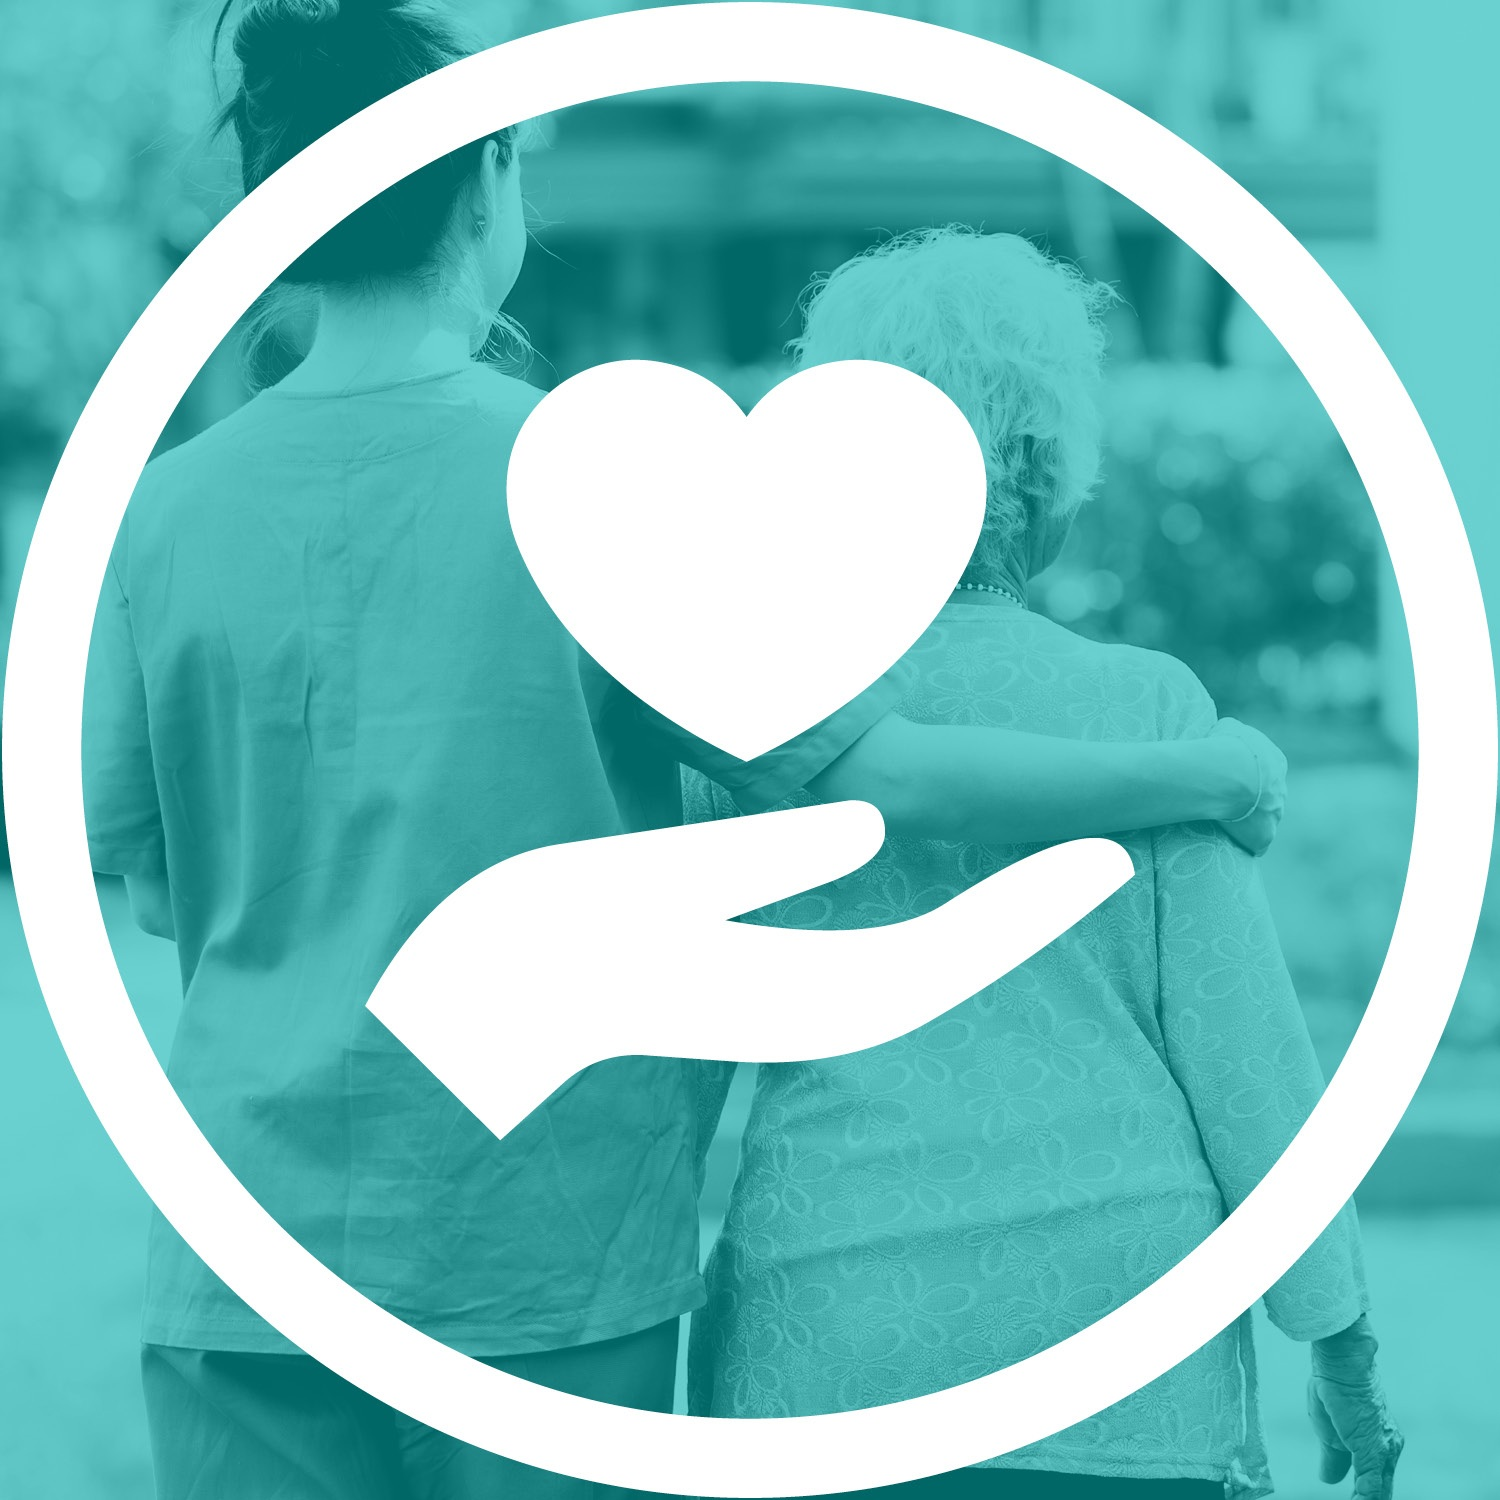 Hand and heart icon (Health and Social Care)